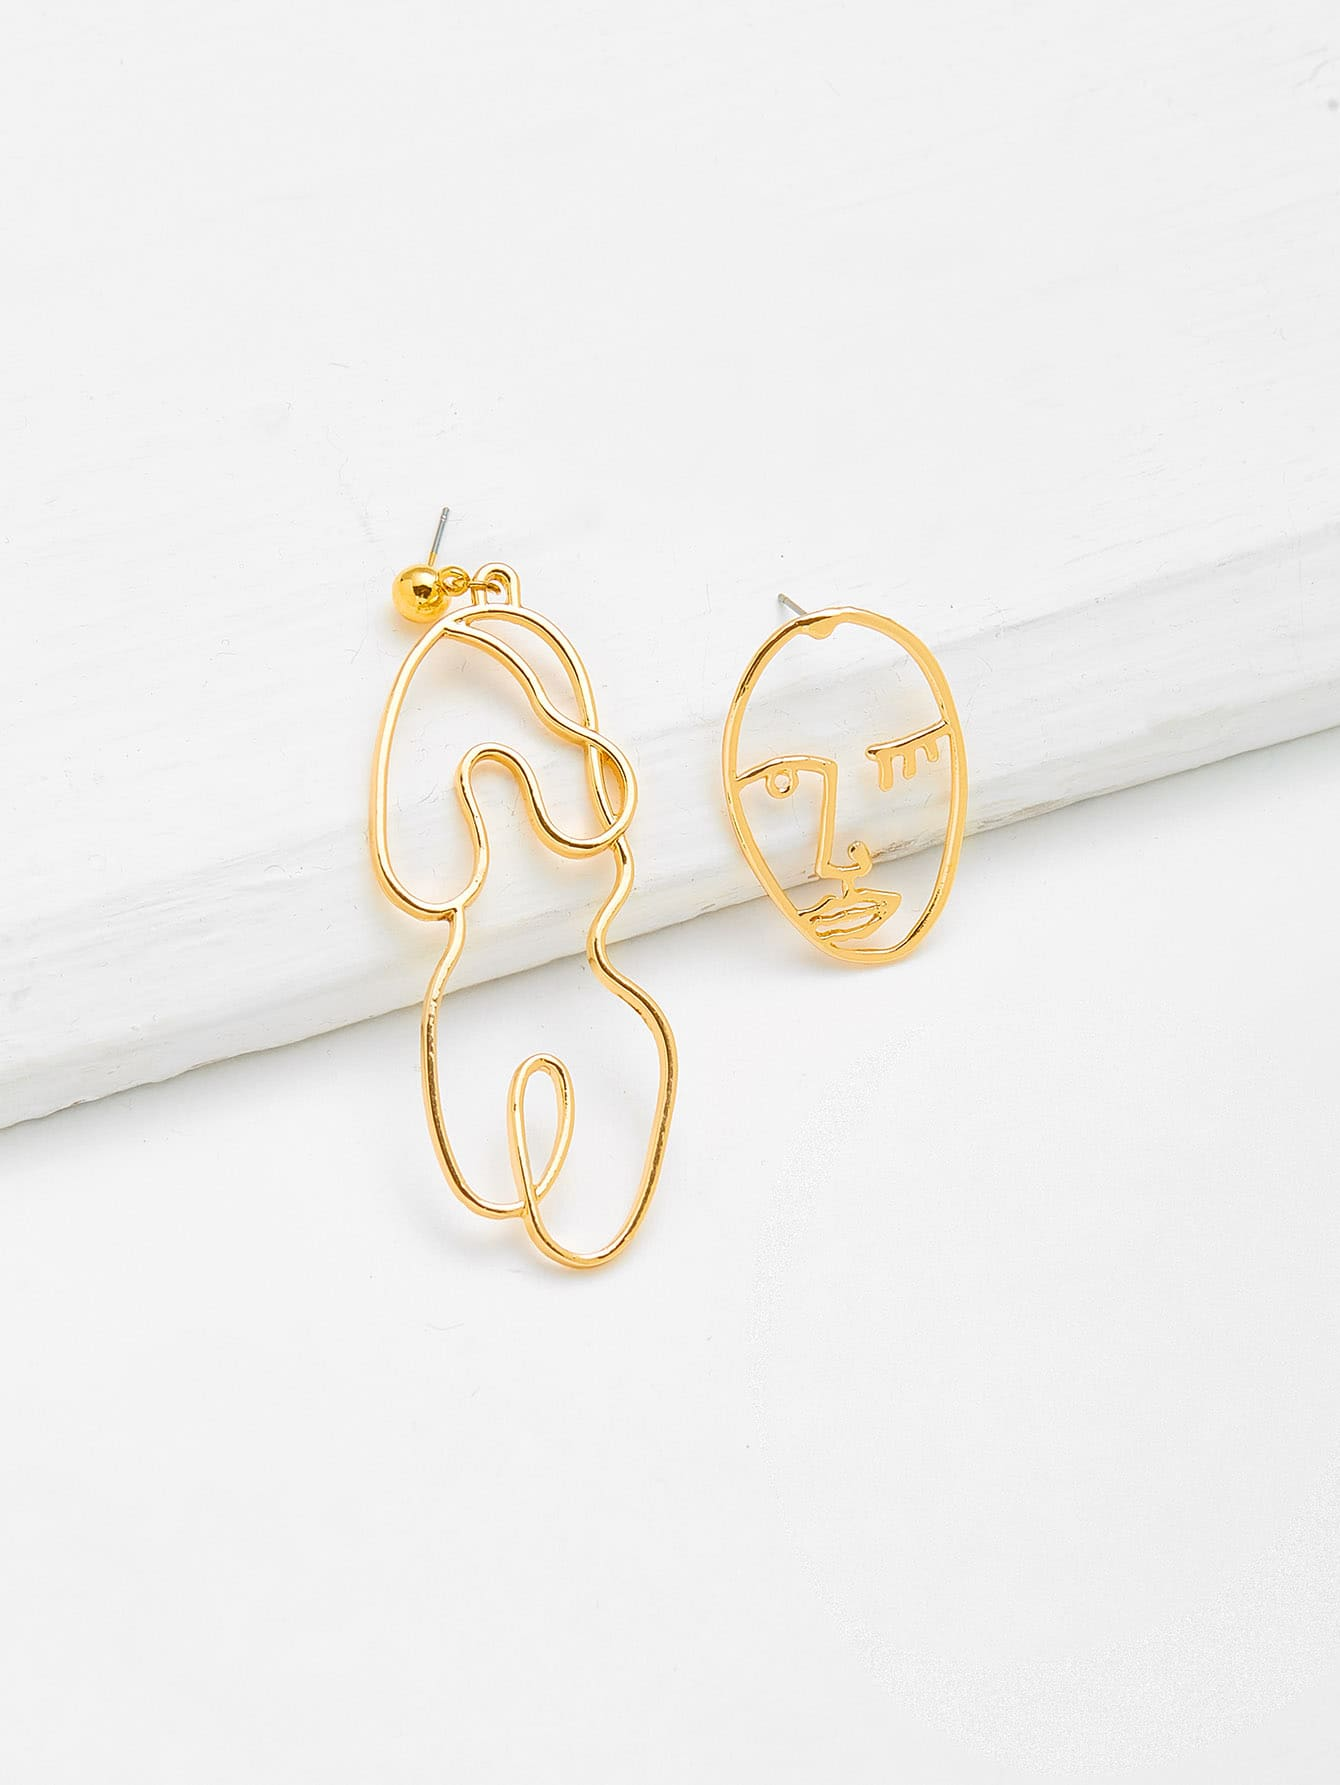 Abstract Open Face Design Drop Earrings two tone face design drop earrings